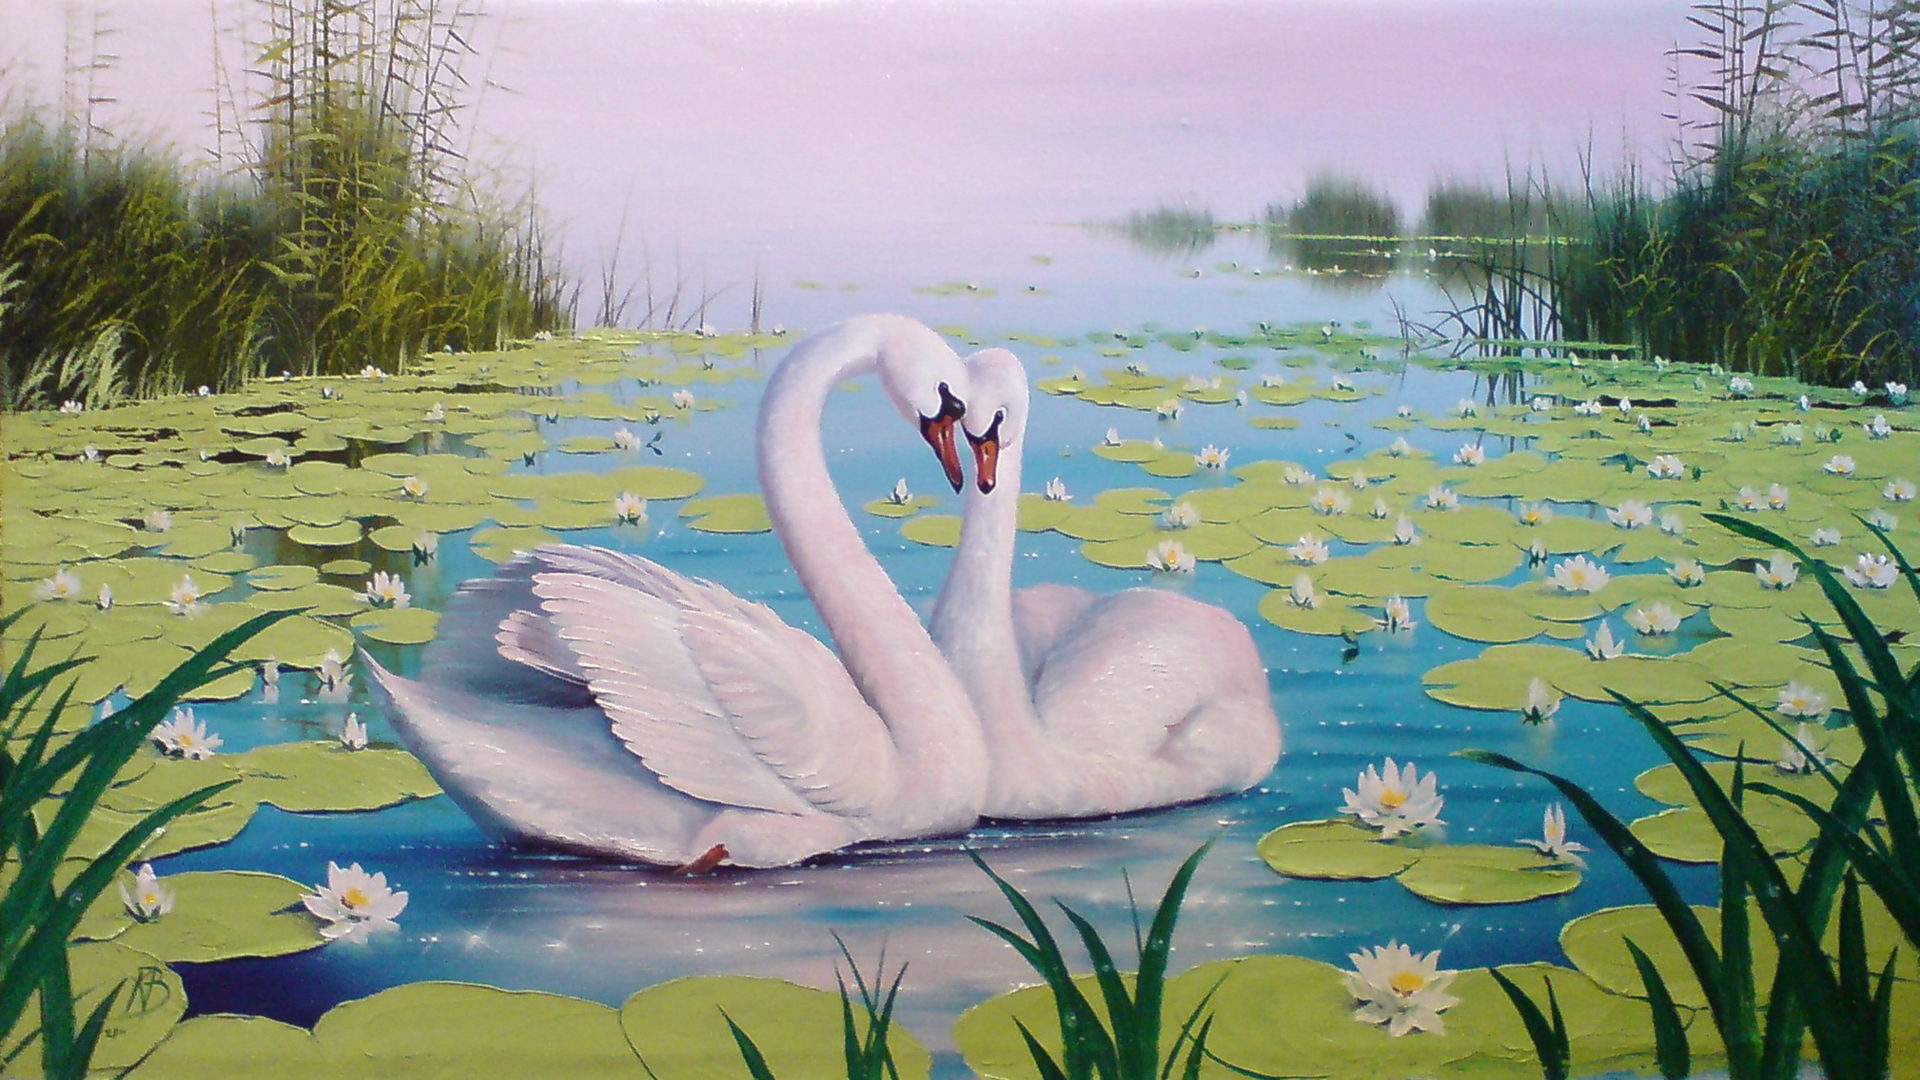 Hd Thanksgiving Wallpaper Free Swan Lake Color Lotus Reeds Art Background Wallpapers13 Com